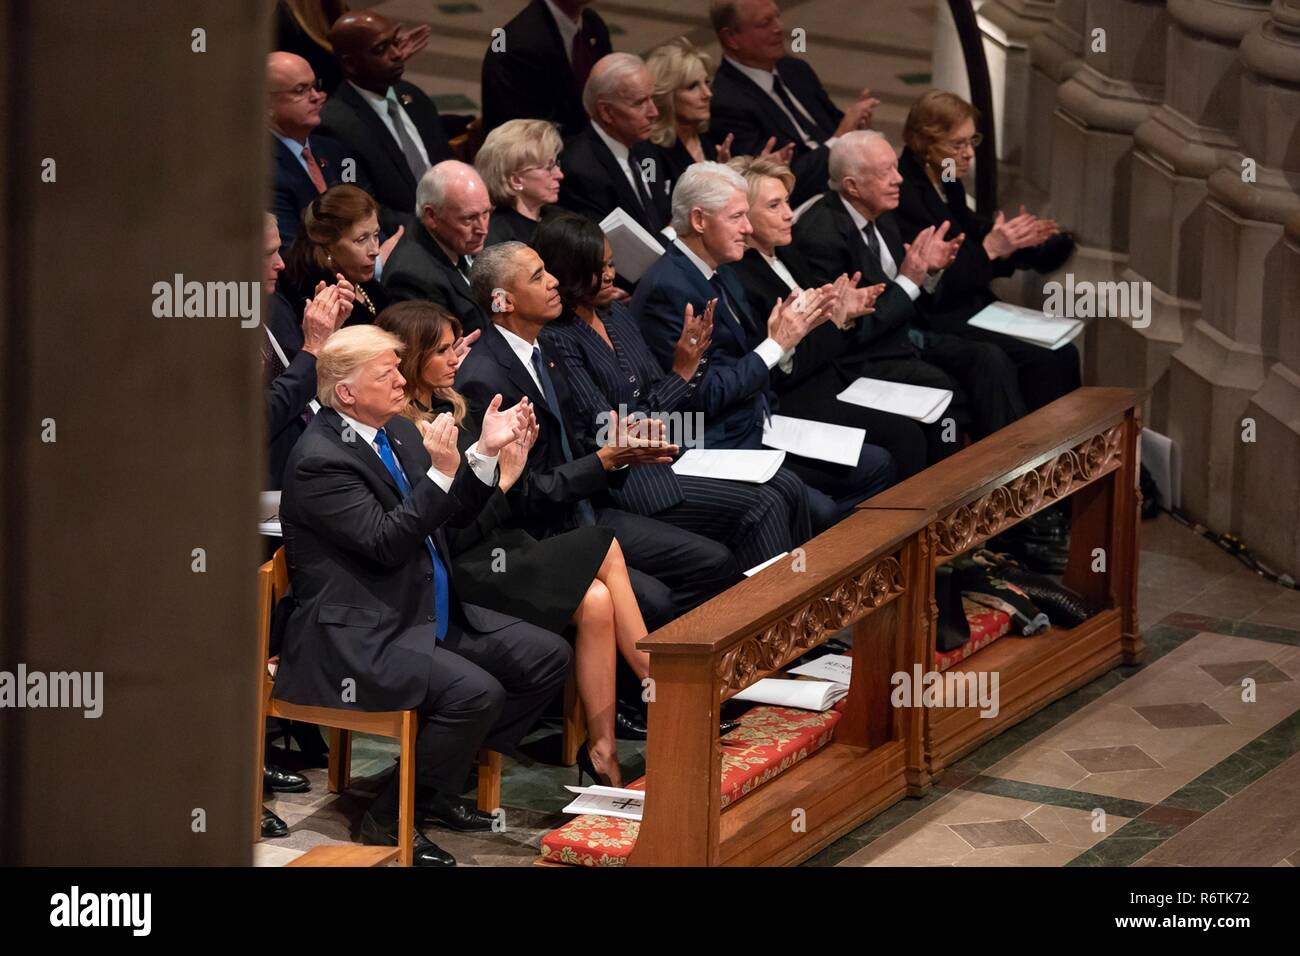 U.S. President Donald Trump and First Lady Melania Trump join former presidents and first ladies during the State Funeral for former president George H.W. Bush at the National Cathedral at the State Funeral December 5, 2018 in Washington, DC. Standing from left to right are: President Donald Trump, First Lady Melania Trump, President Barack Obama, First Lady Michelle Obama, President Bill Clinton, First Lady Hillary Clinton, President Jimmy Carter and First Lady Rosalynn Carter.  Bush, the 41st President, died in his Houston home at age 94. Stock Photo